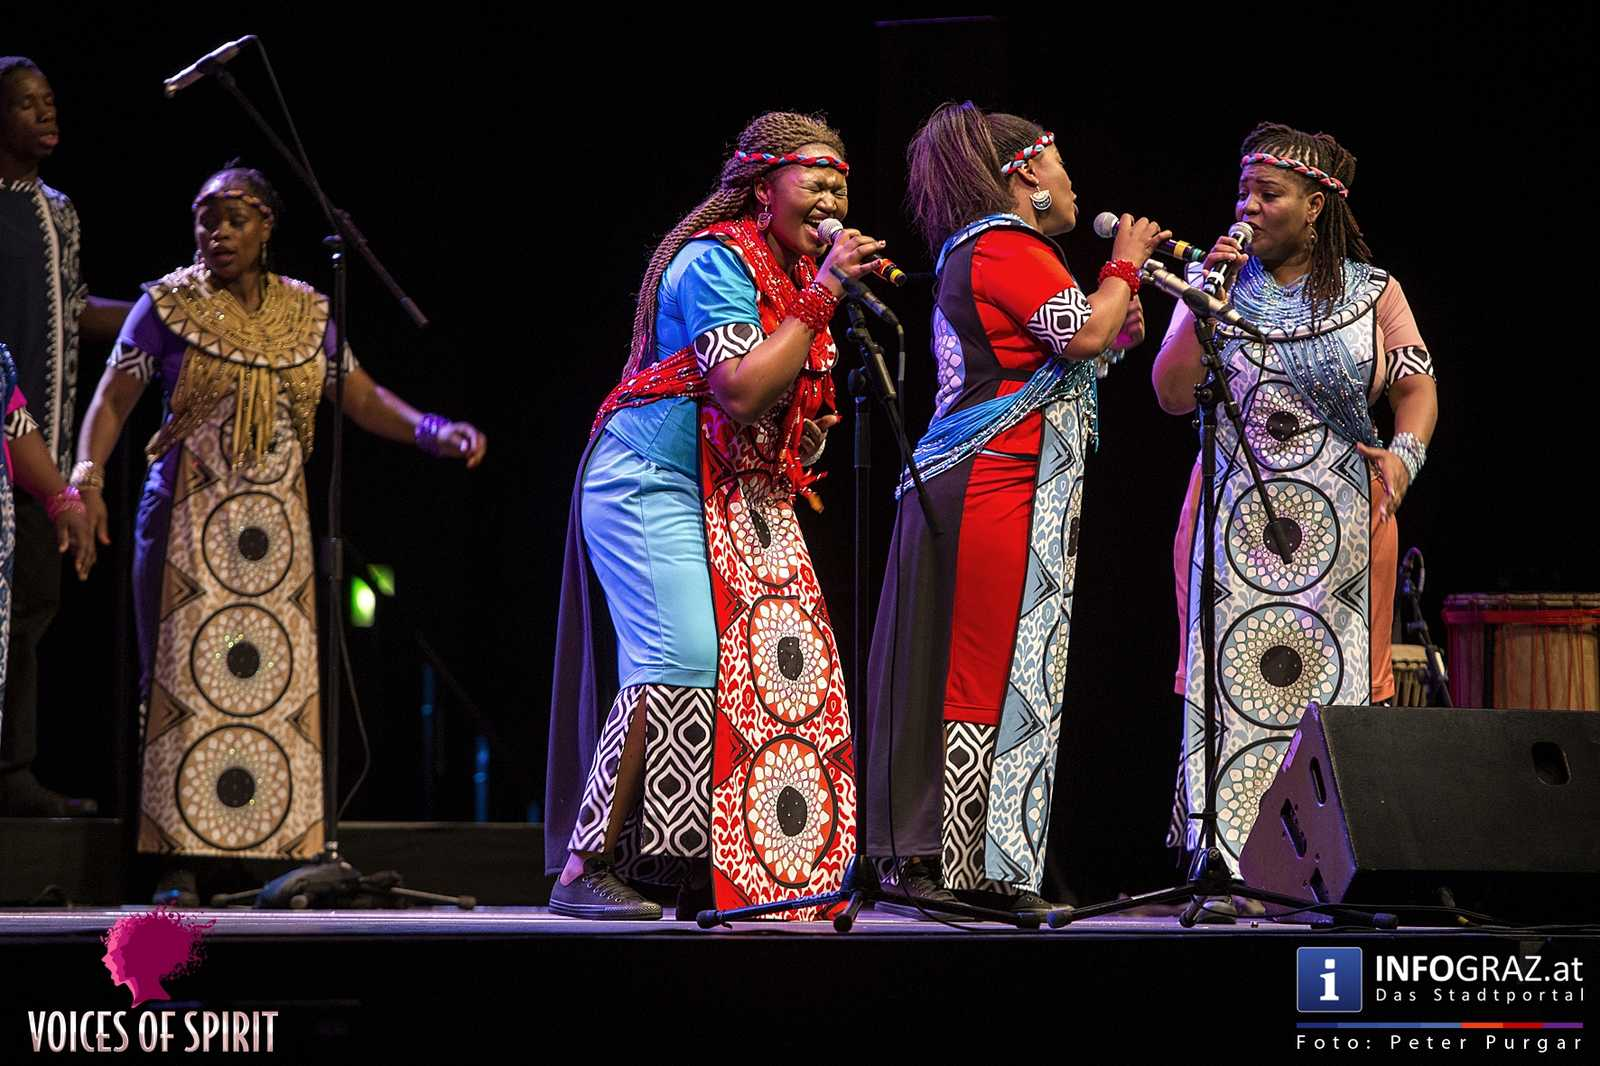 soweto gospel choir internationales chorfestival statdthalle graz voices of spirit eroeffnung festivals 2016 097